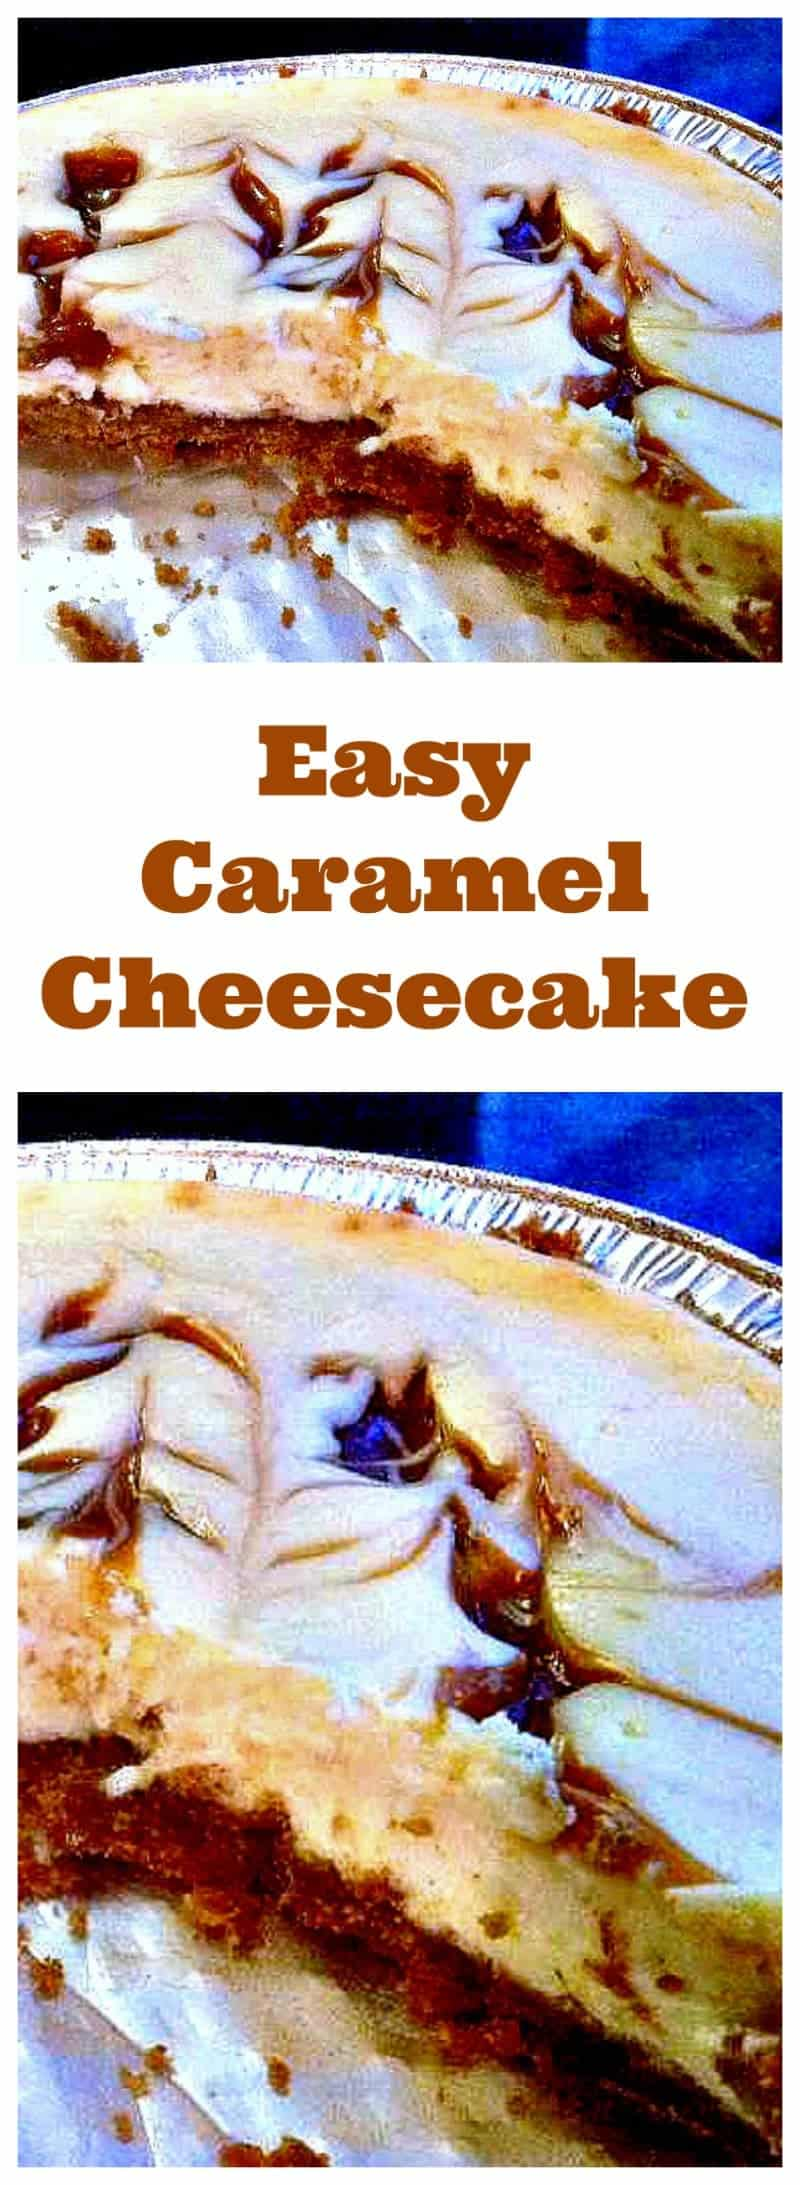 Caramel Cheesecake... Oh yummy! A wonderful baked Vanilla Cheesecake with ripples of caramel though out. Easy recipe and always a hit!